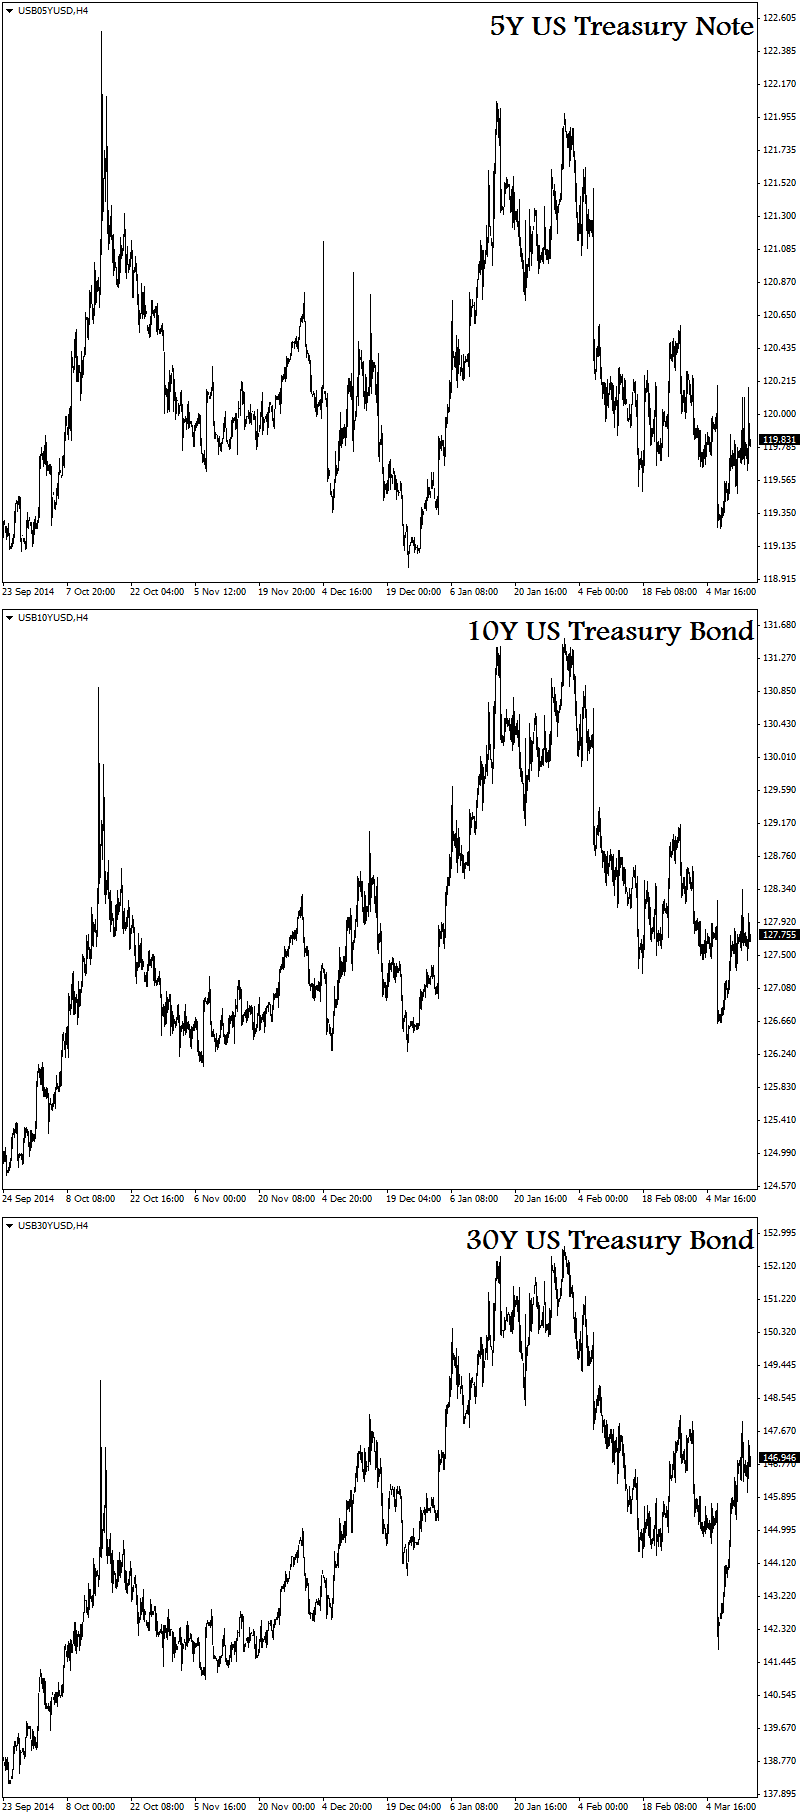 On the UST curve, the 2Y is down YTD, while both the 10Y and long bond are positive albeit having experienced higher than average volatility. It is obvious where traders have been repositioning themselves as expectations of the Fed rate hike constantly shift. The 20Y and beyond have outpeformed while all maturities under 5Y have been negatively affected.   Any trader with a short 5s10s30s butterfly position on would have seen a nice payoff in he last month or so.